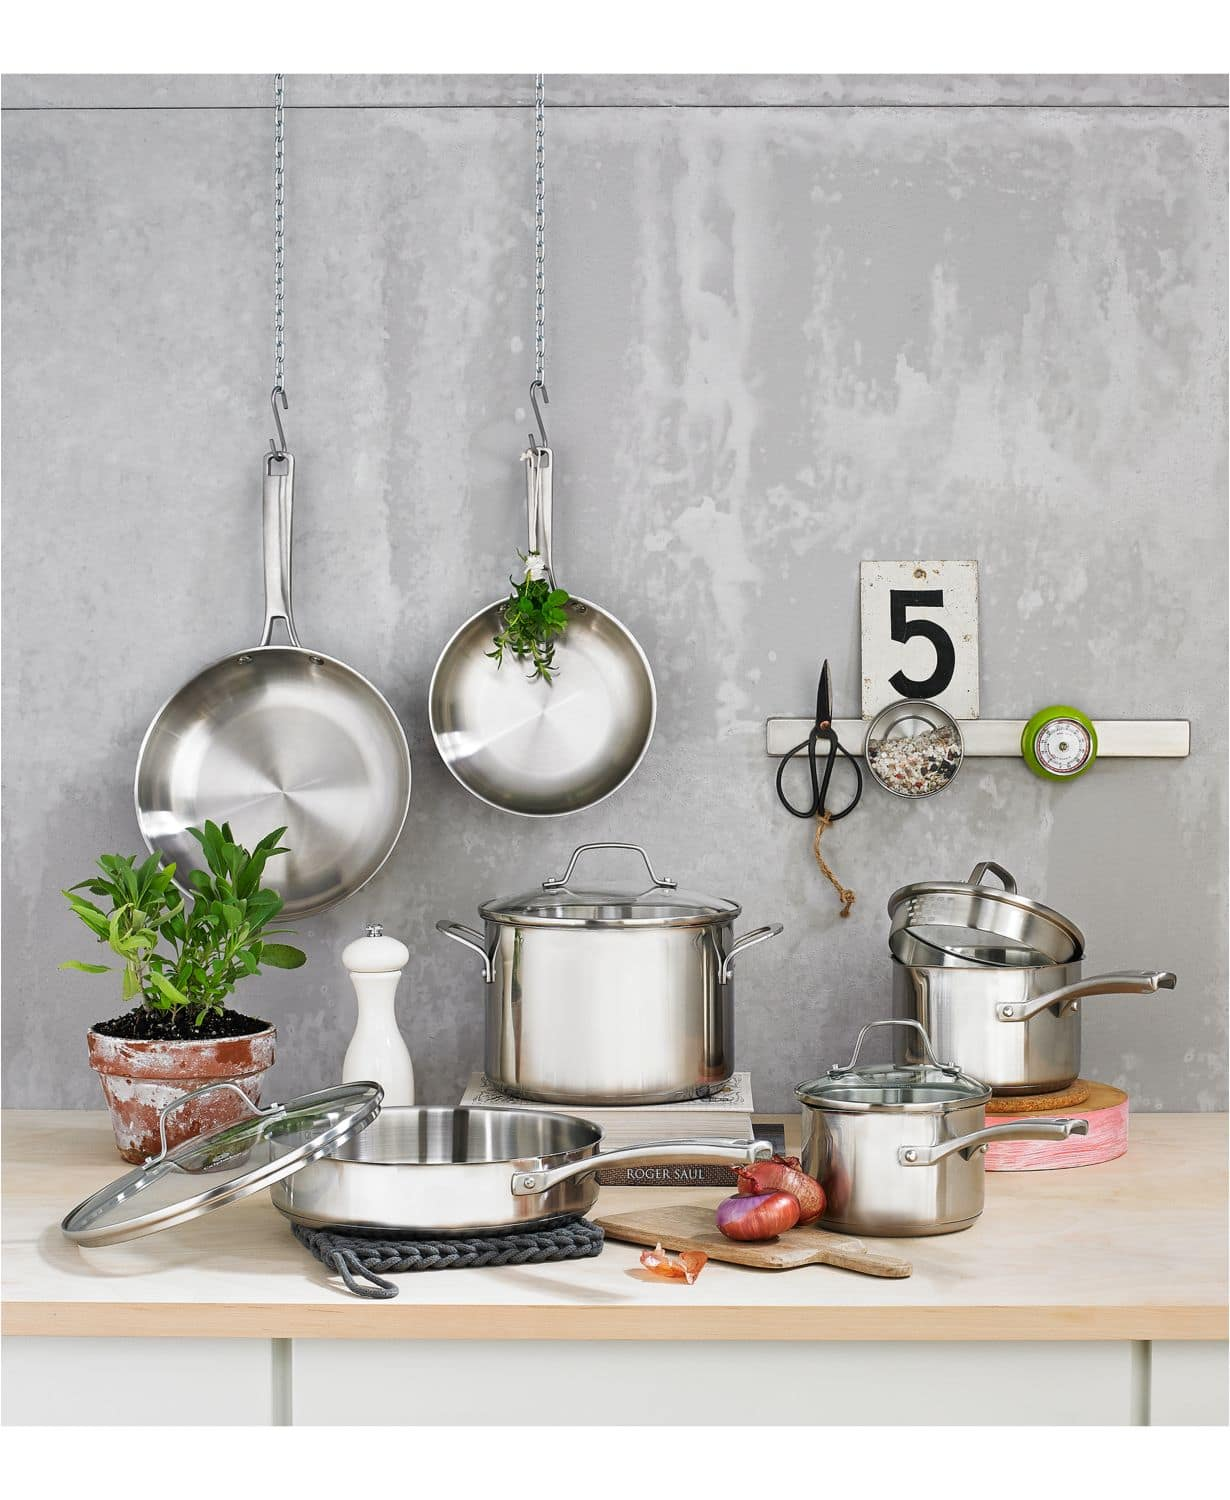 10-Pc Calphalon Classic Stainless or Nonstick Cookware Set + Bonus All-Purpose Pan w/ Lid $119 + free shipping